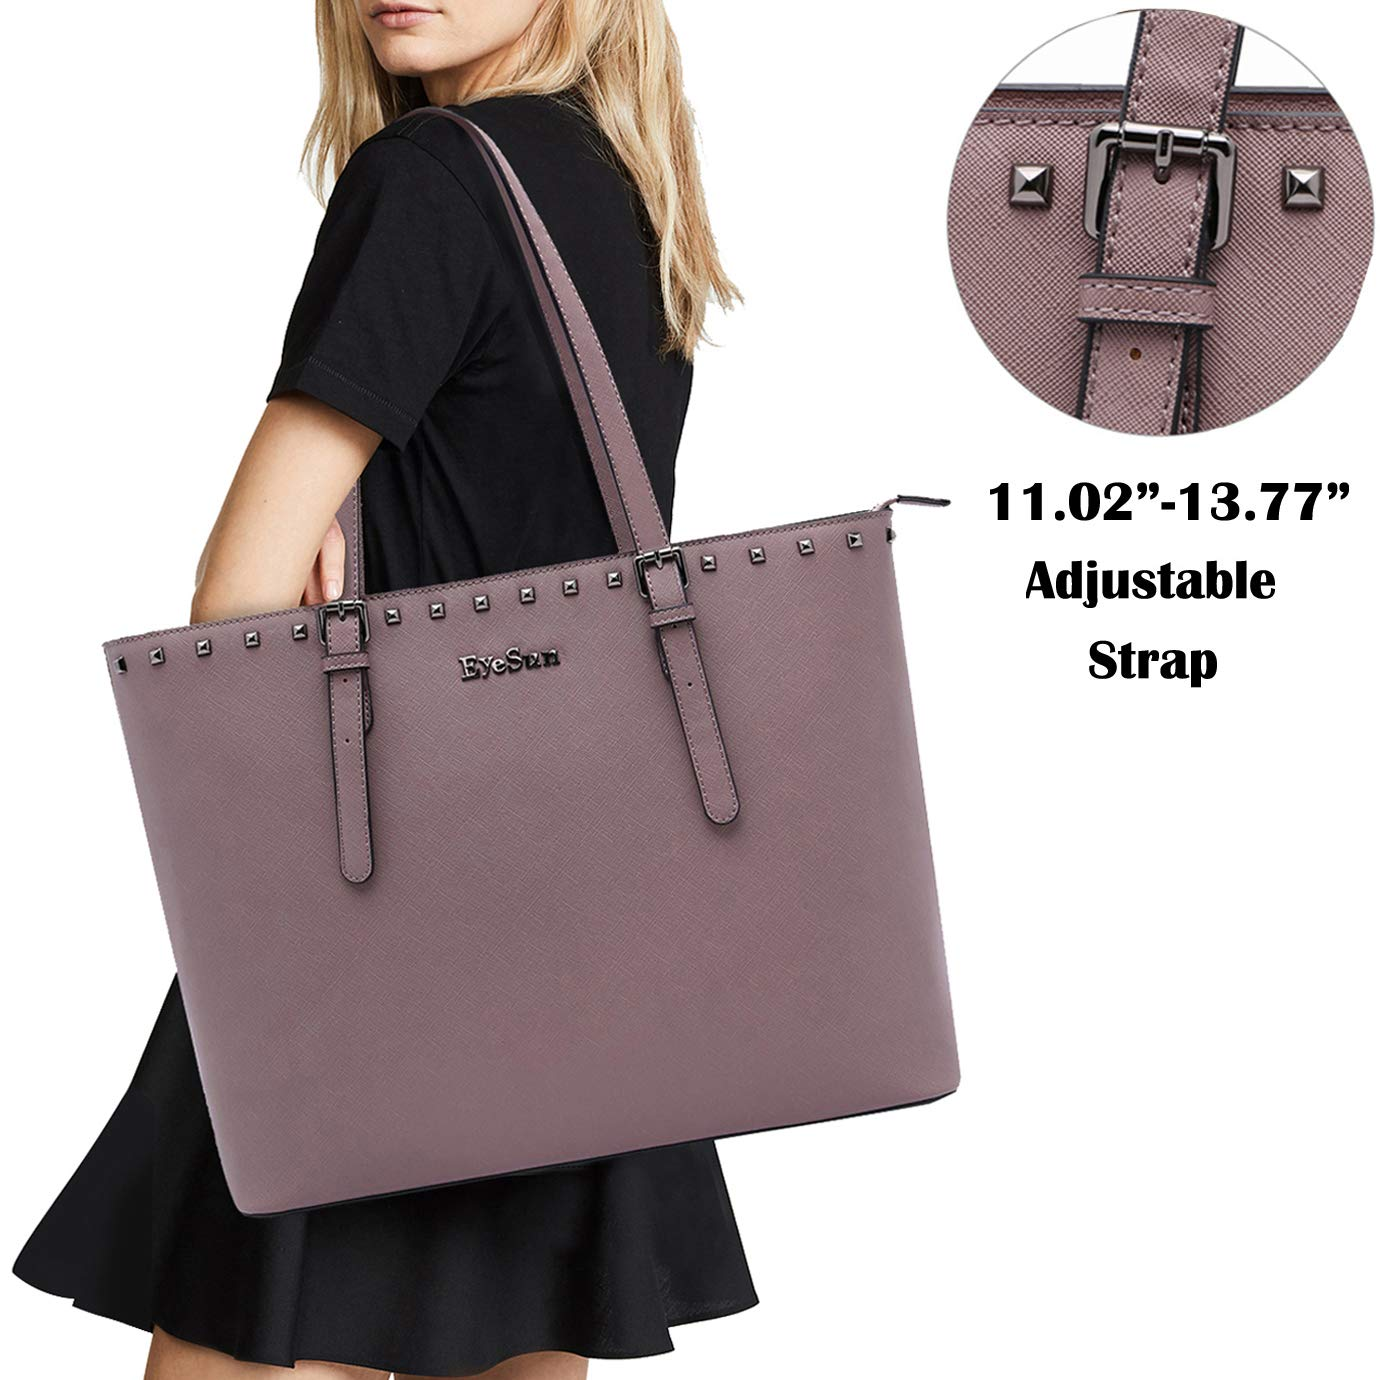 Laptop Bag for Women,15.6 Inch Laptop Tote Bag Office Briefcase with Adjustable Strap and Rivets(2013-purple) by EyeSun (Image #5)